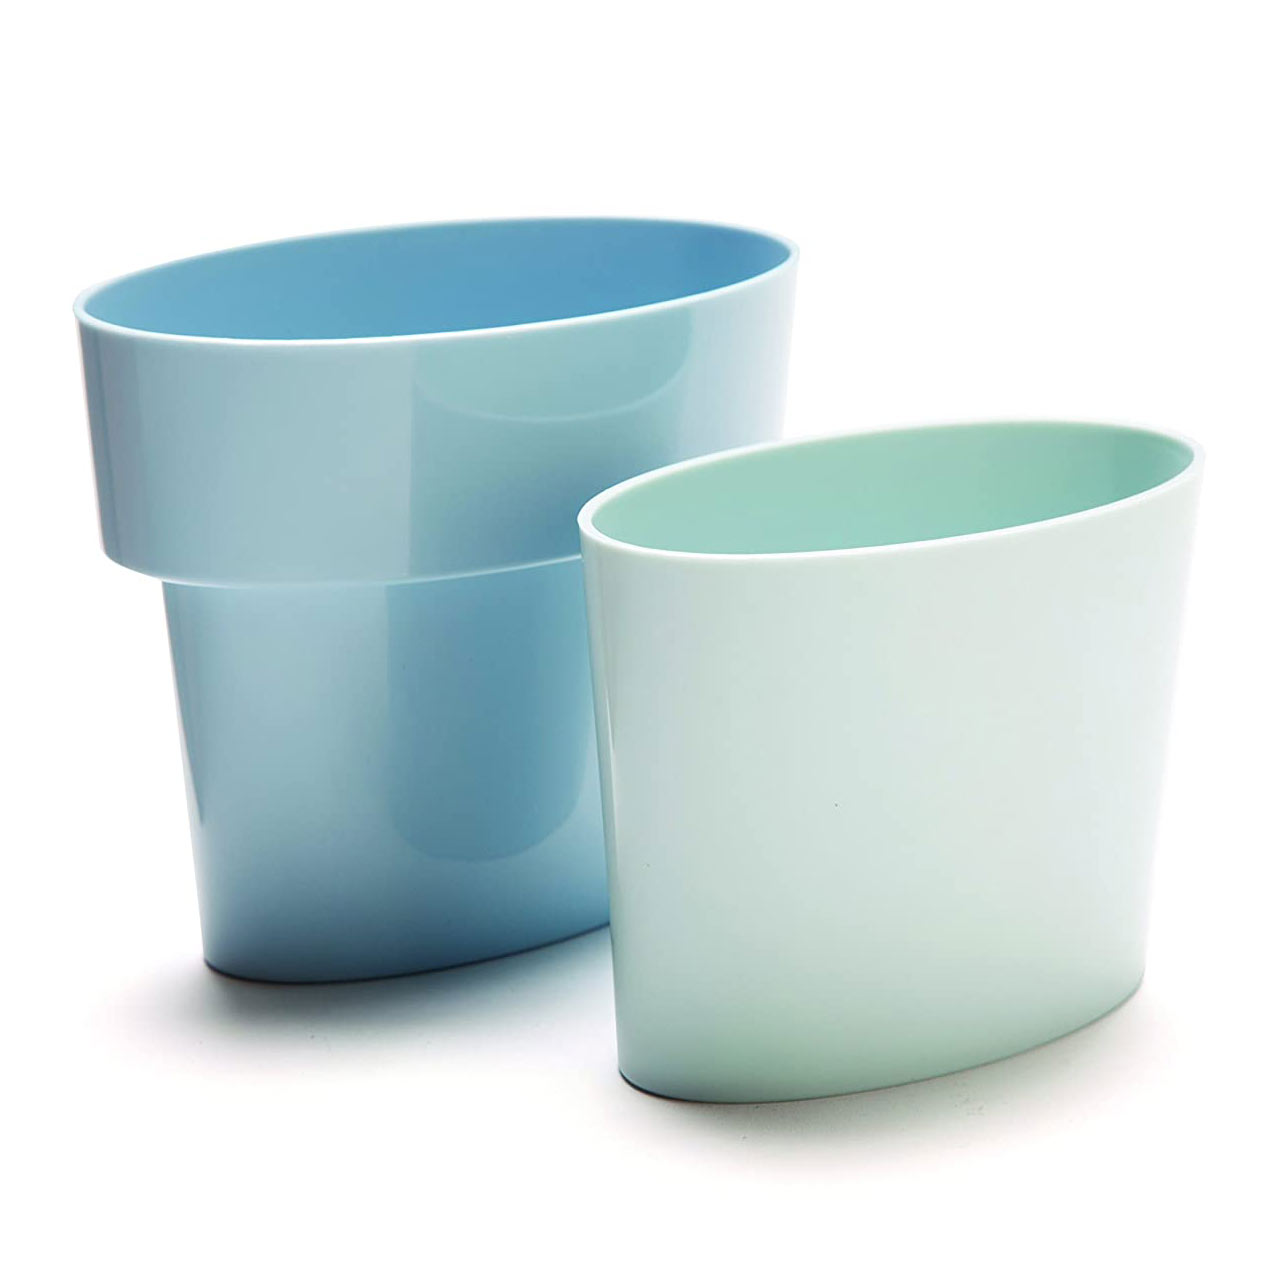 Blue Slim Flower Pot by Monkey Business | the design gift shop